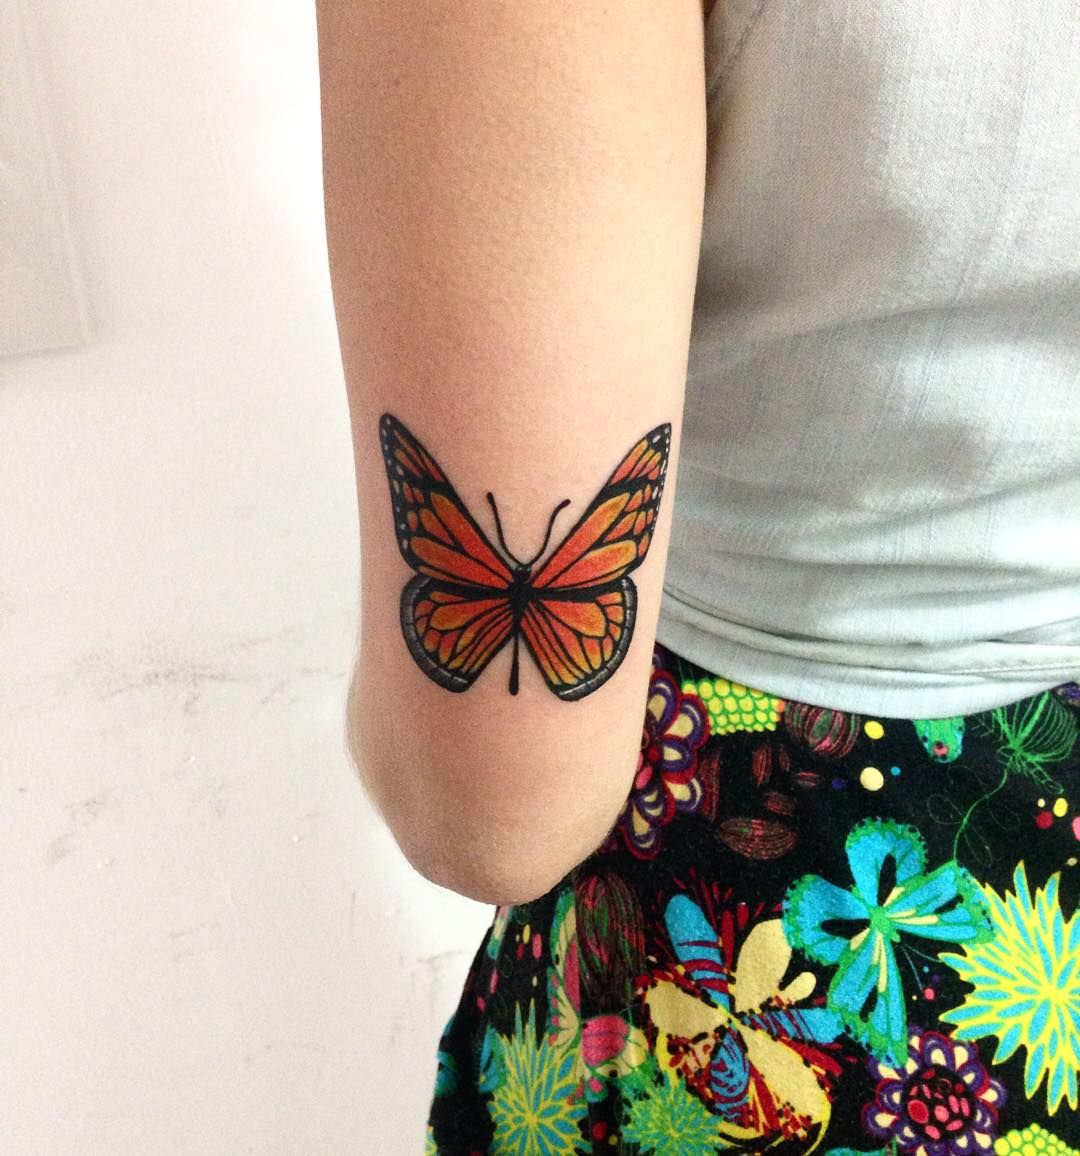 Butterfly Tattoo - What Does Meaning Butterfly Tattoo On Female Body Mean 92